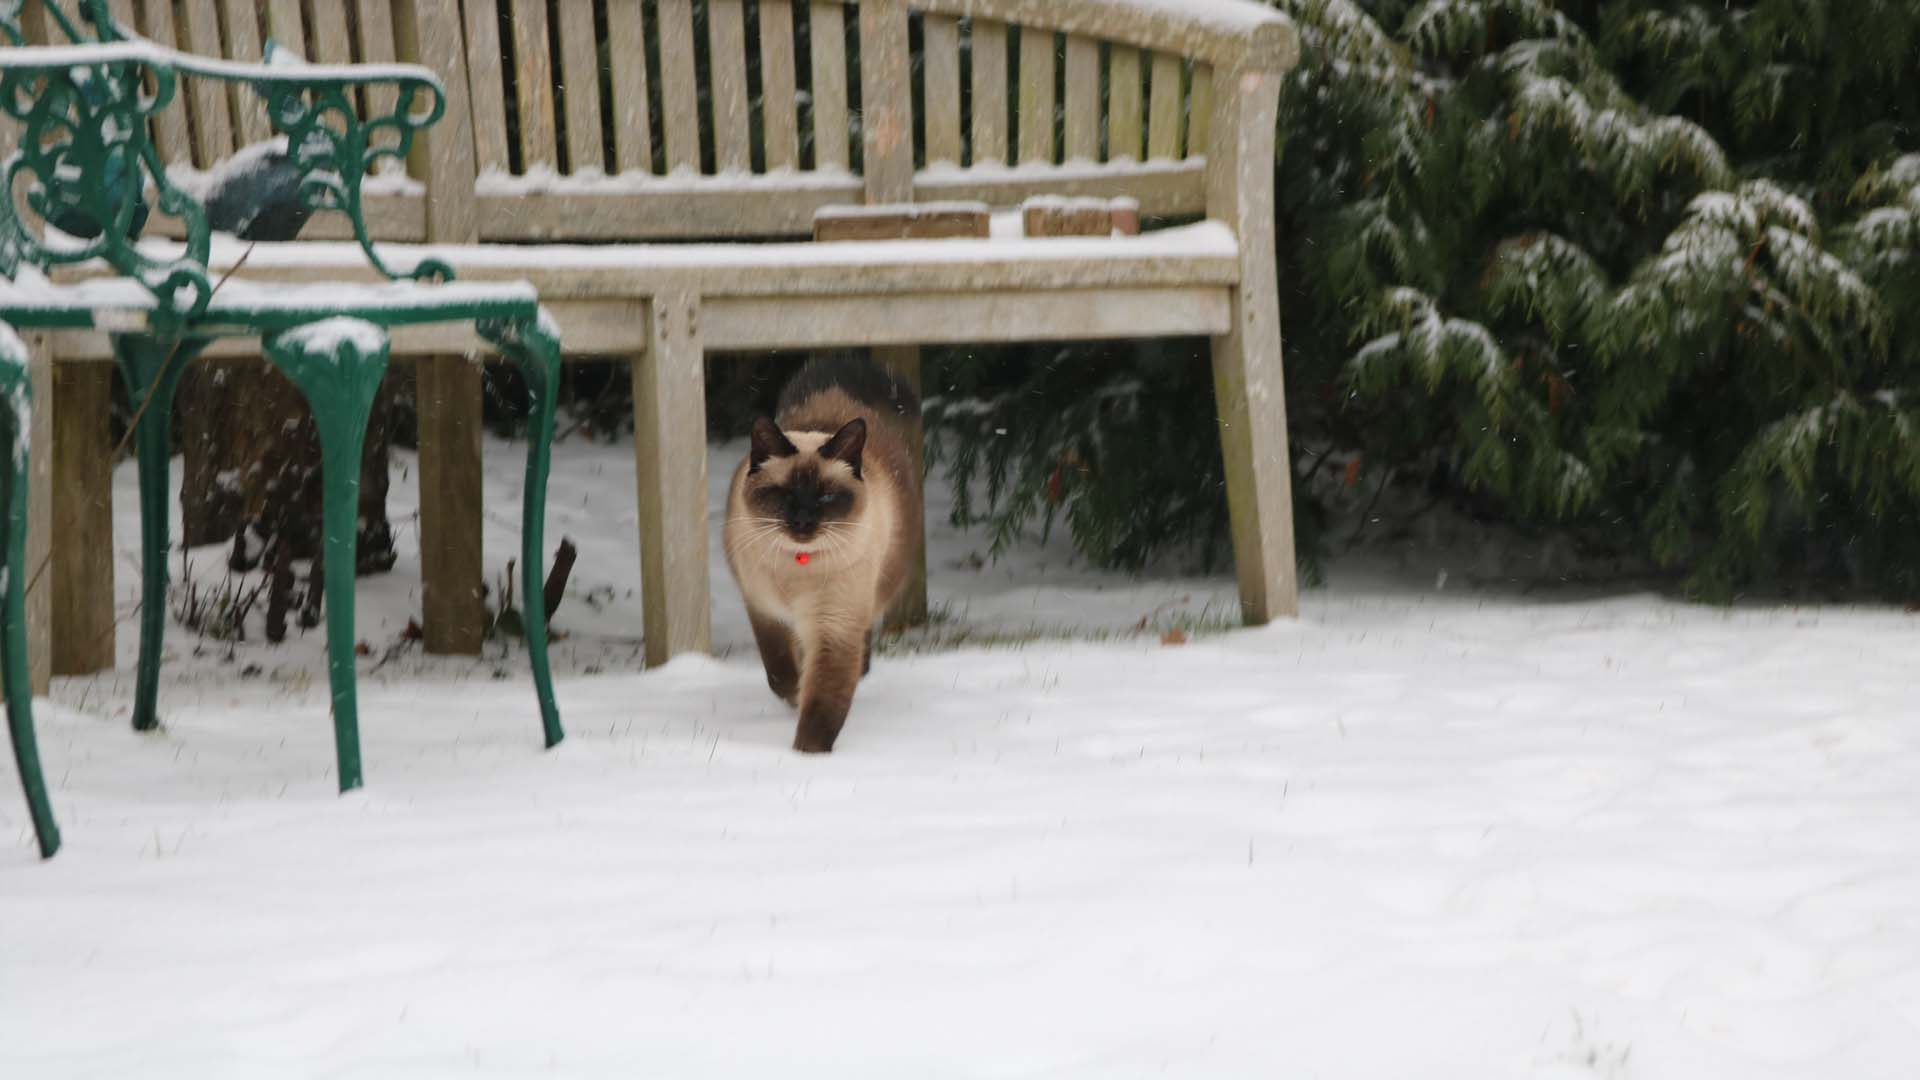 Beauty enjoying the snow